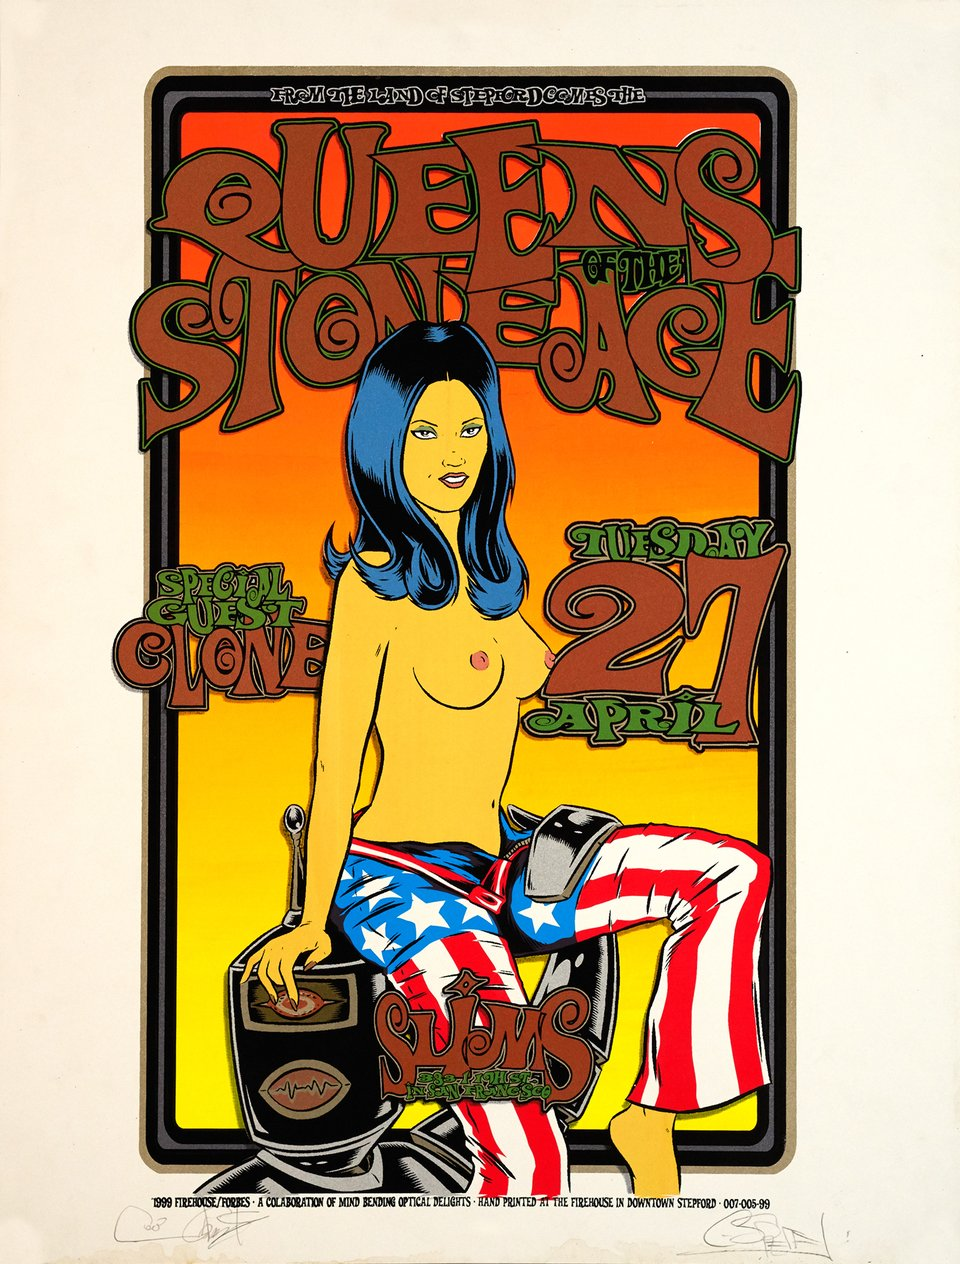 From the Land of Steppord comes the Queens of the Stone Age – Vintage poster – Ron DONOVAN, Chuck SPERRY – 1999